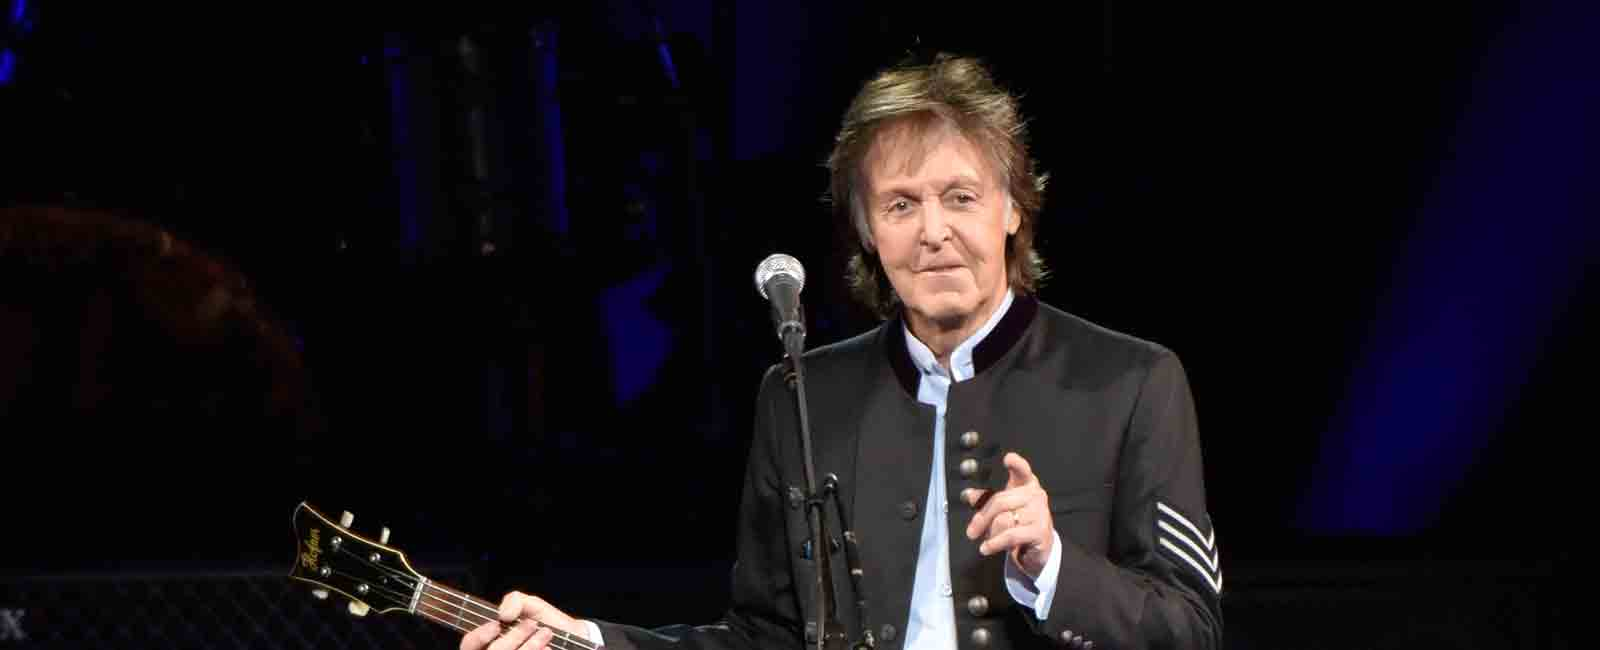 Paul McCartney triunfa en Hollywood recién cumplidos 75 años